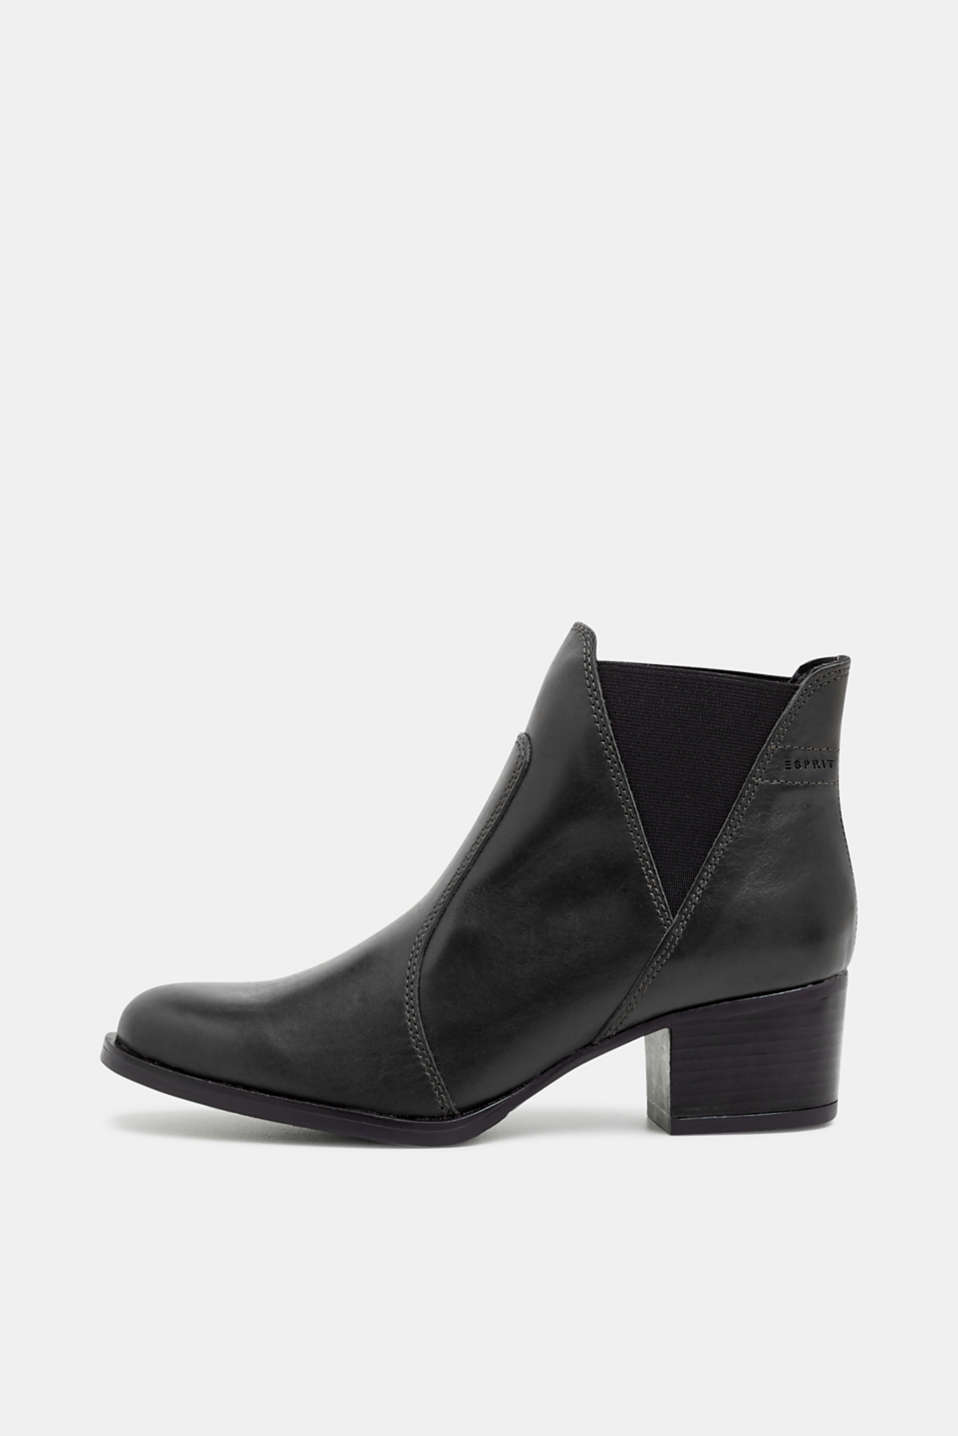 Esprit - Bottines à talons bottier, en cuir